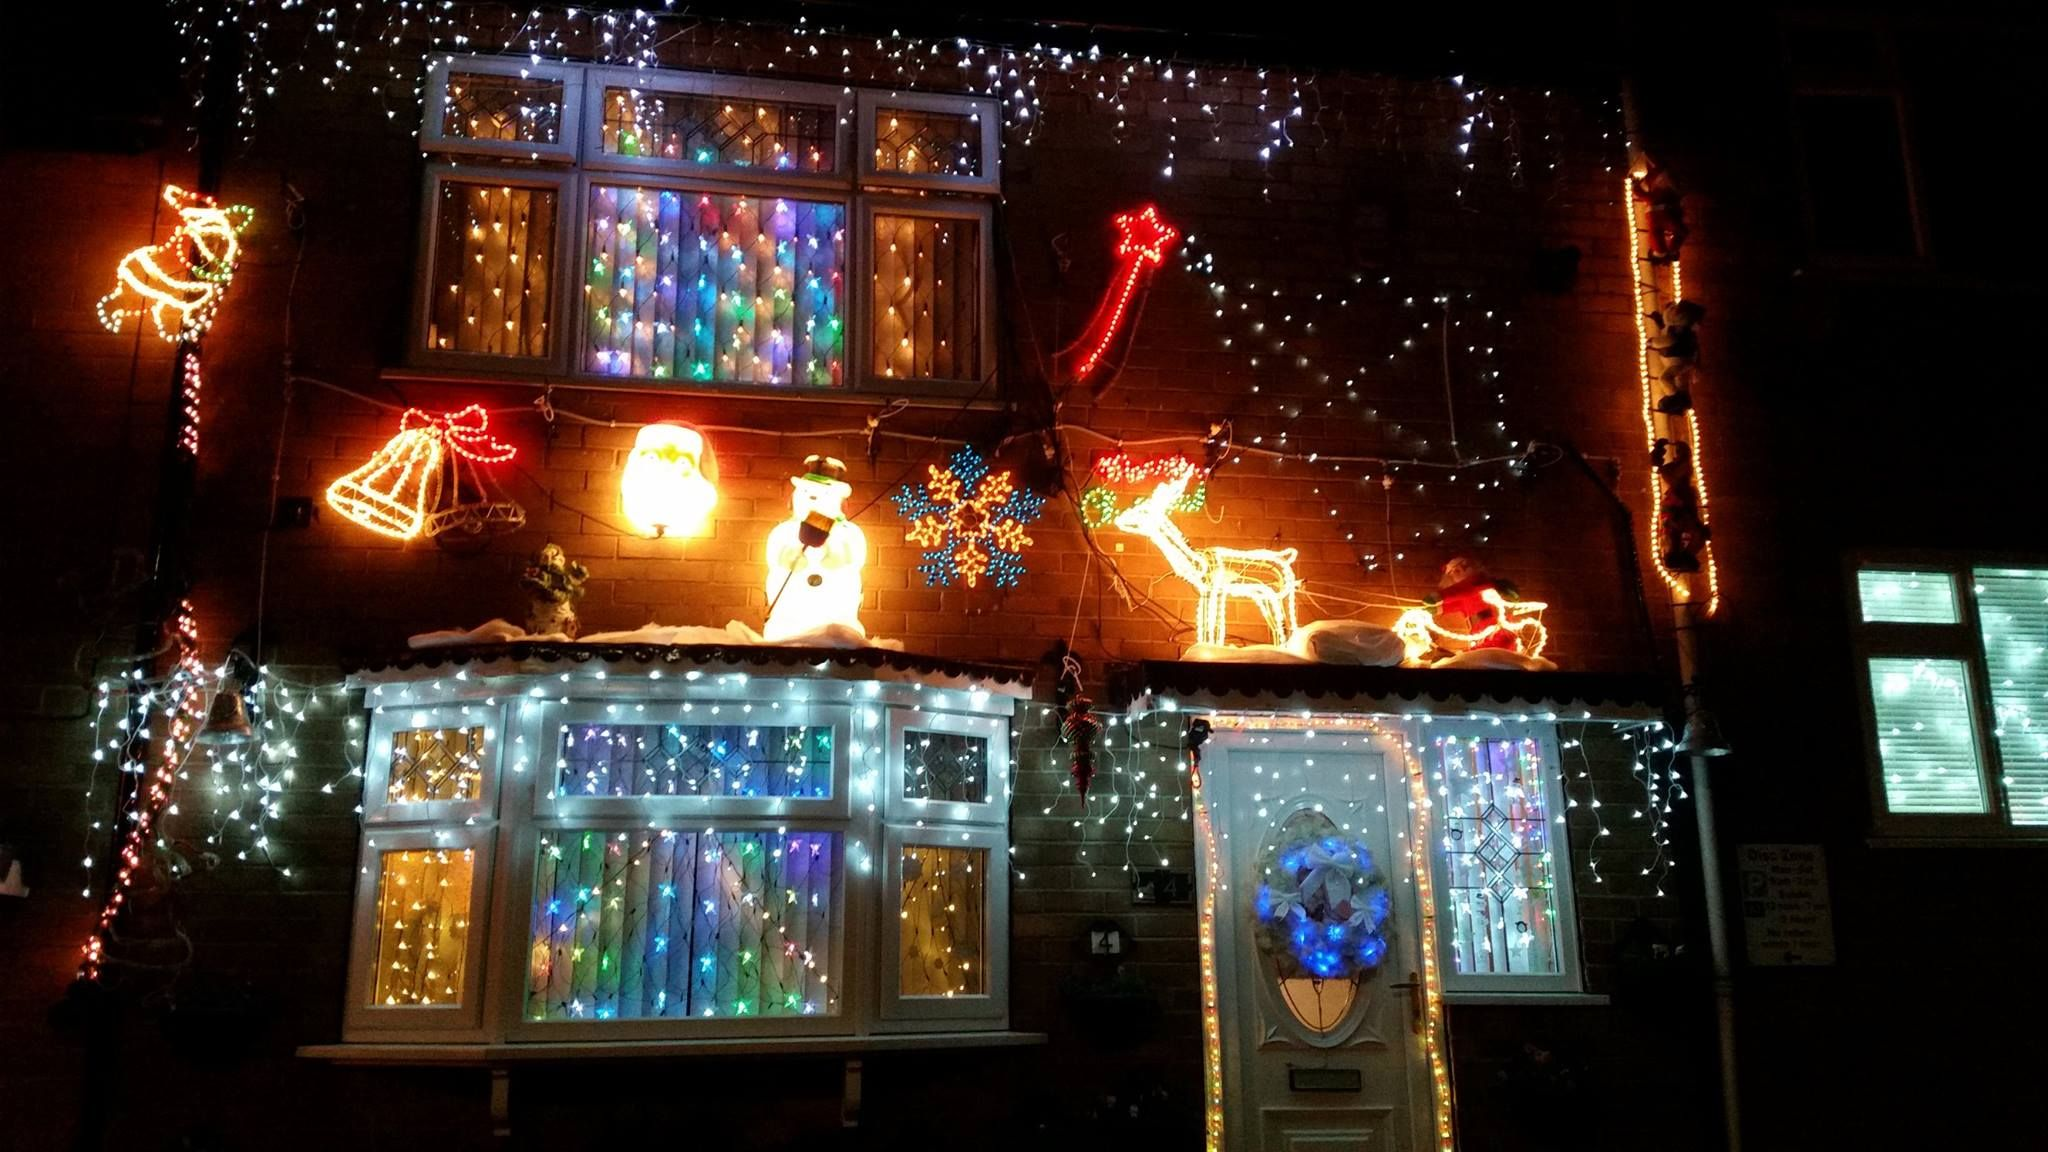 Castle Ward Residents Association Christmas Light Competition. #YCH  #YCHnews #YorkshireCoastHomes